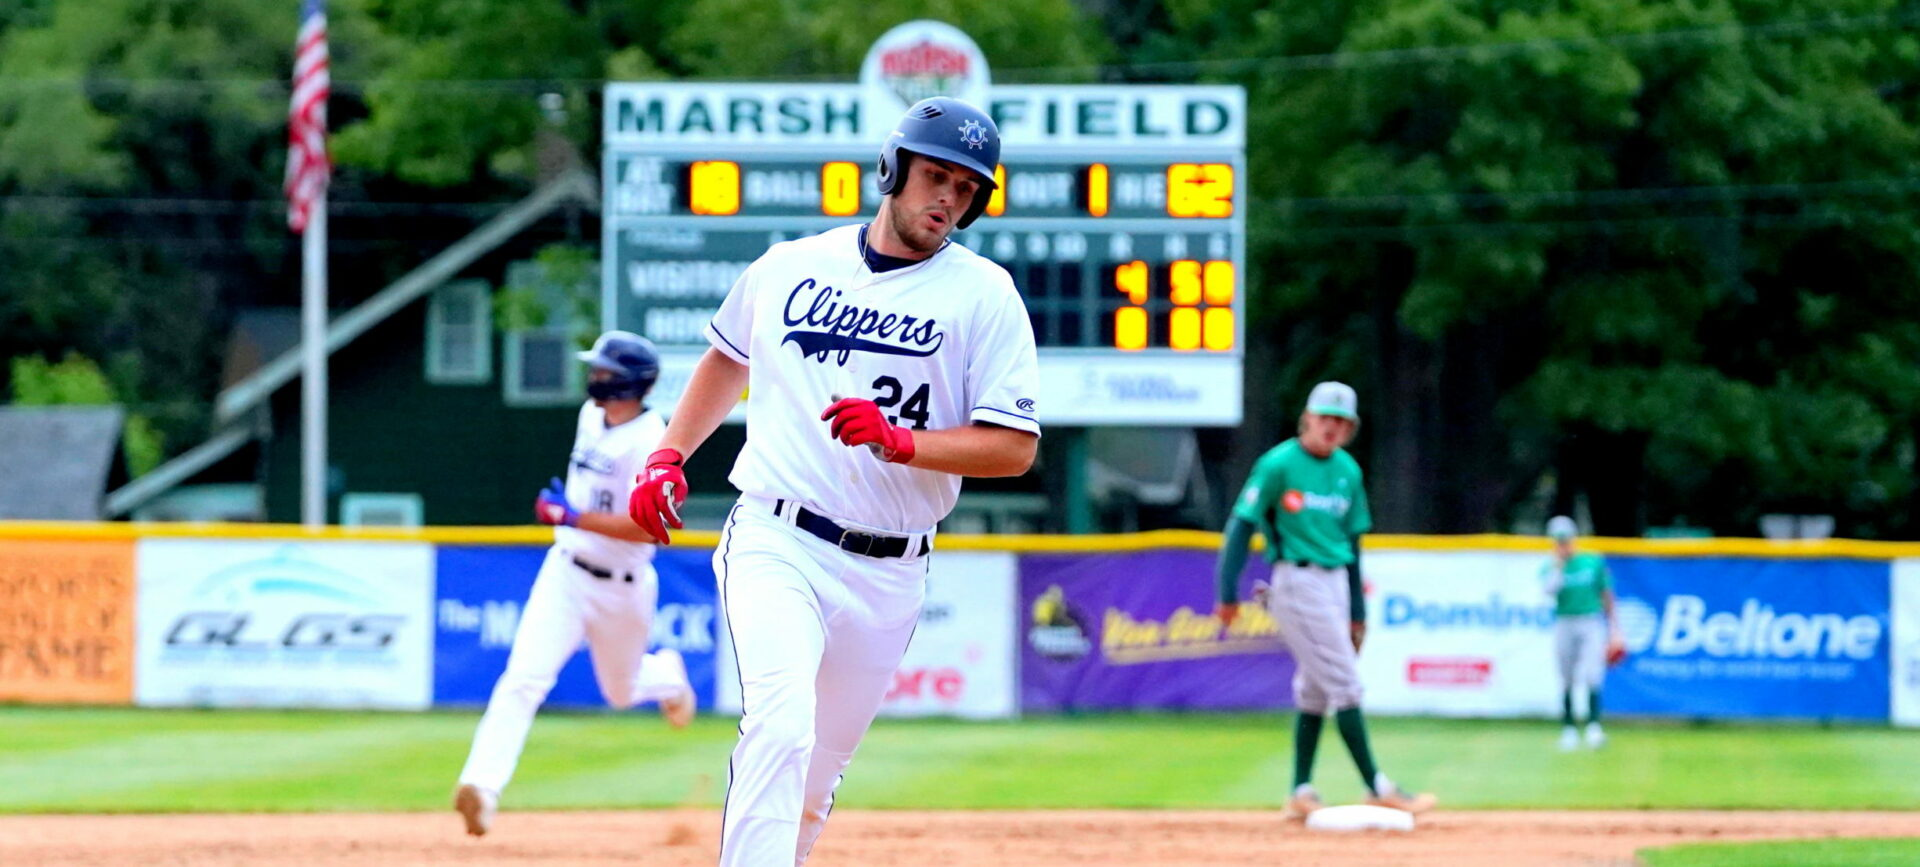 The Muskegon Clippers fall 7-2 to tje Royal Oak Leprechauns in their season opener, and their first game since 2019